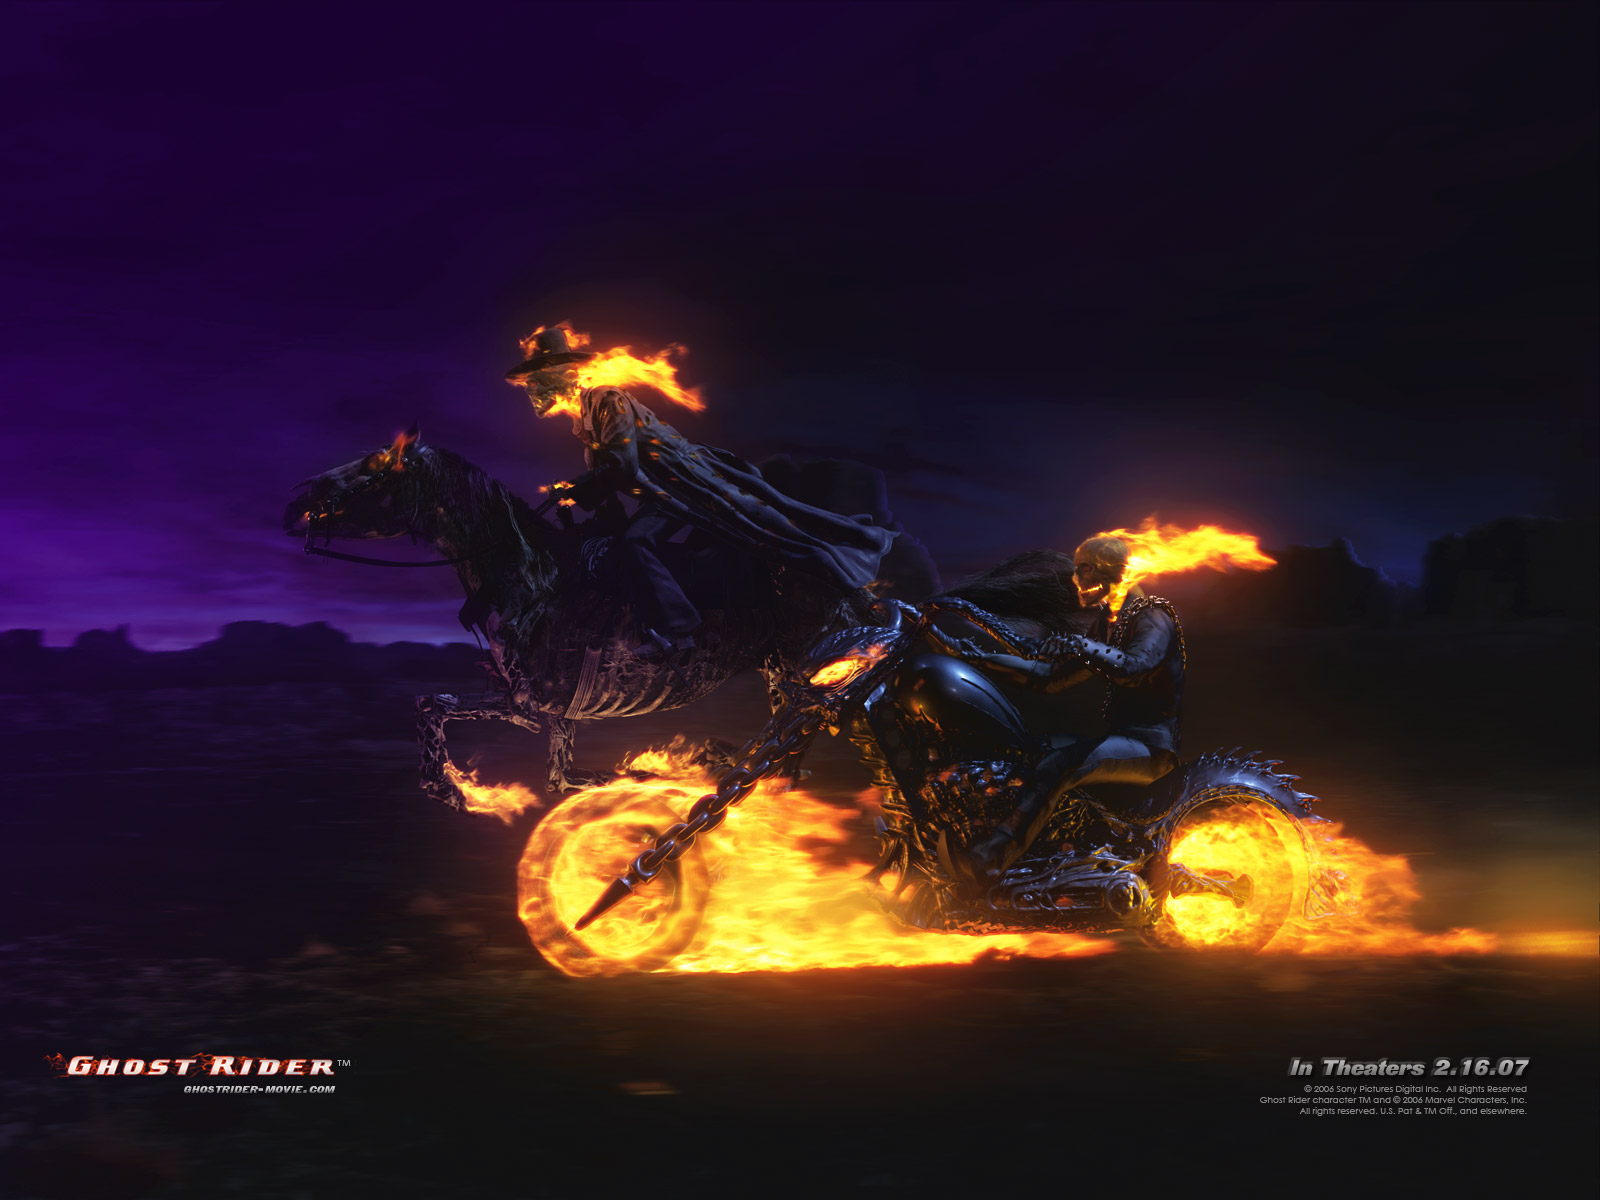 wall paper bonus ghost rider movie wallpaper